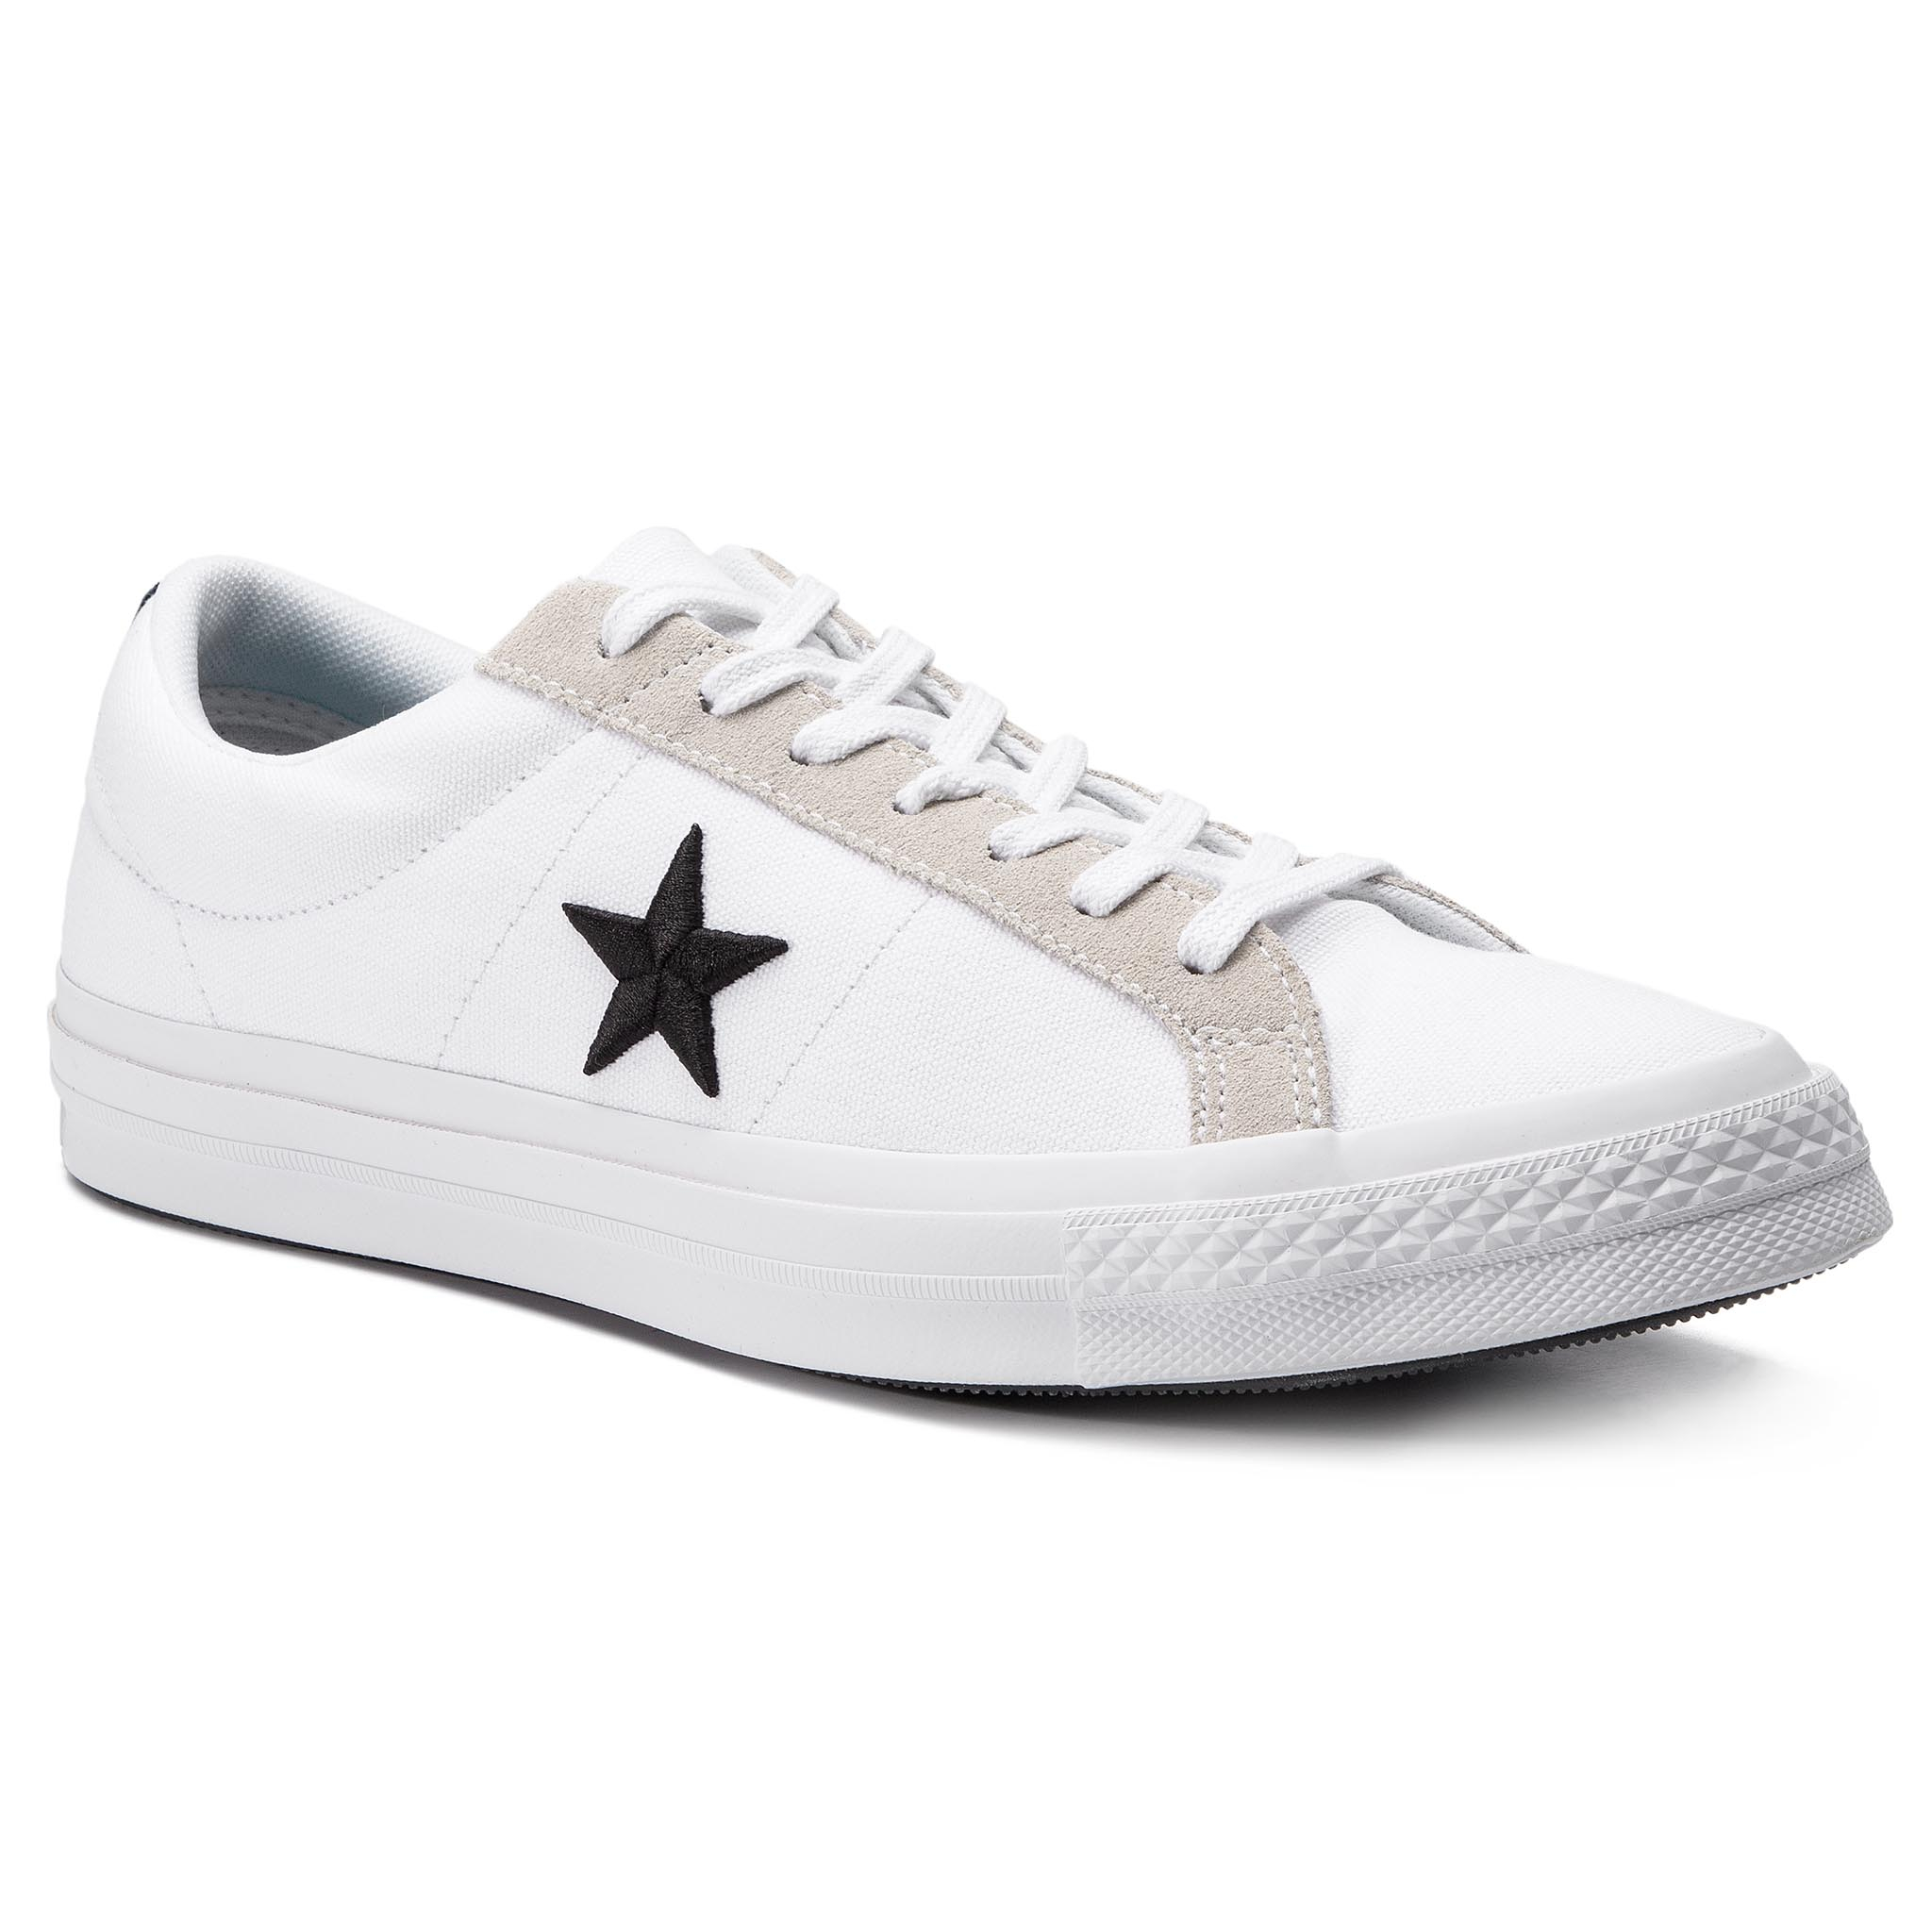 Tenisówki CONVERSE – One Star Ox 160601C White/Black/Black